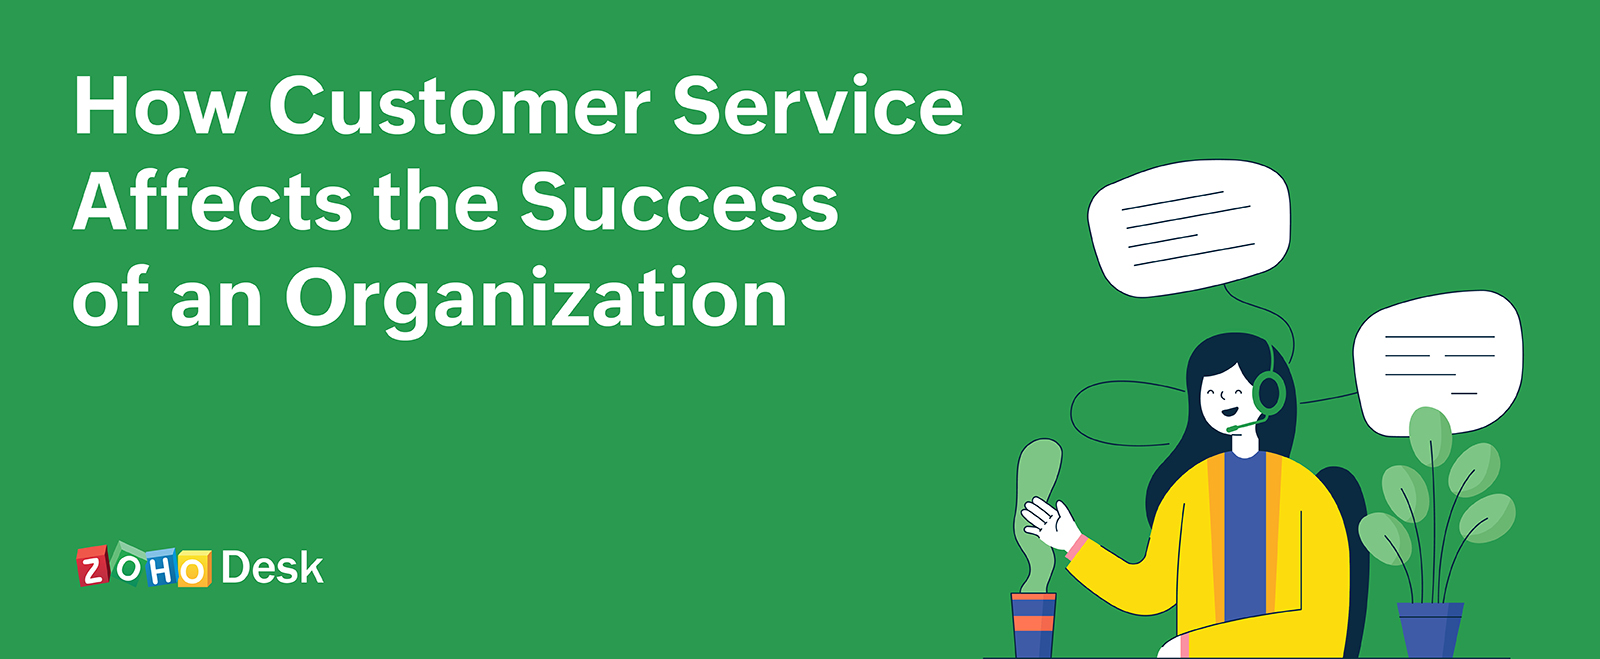 How Customer Service Affects the Success of an Organization